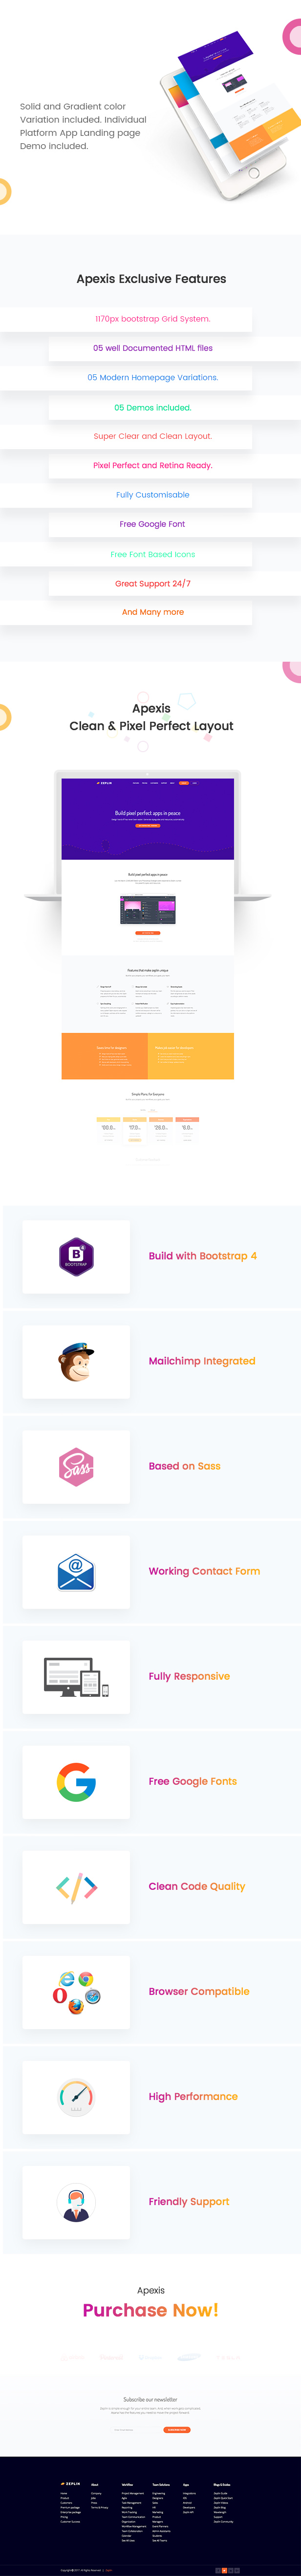 Apexis - Responsive Bootstrap 4 Software & WebApp HTML5 Template - 3